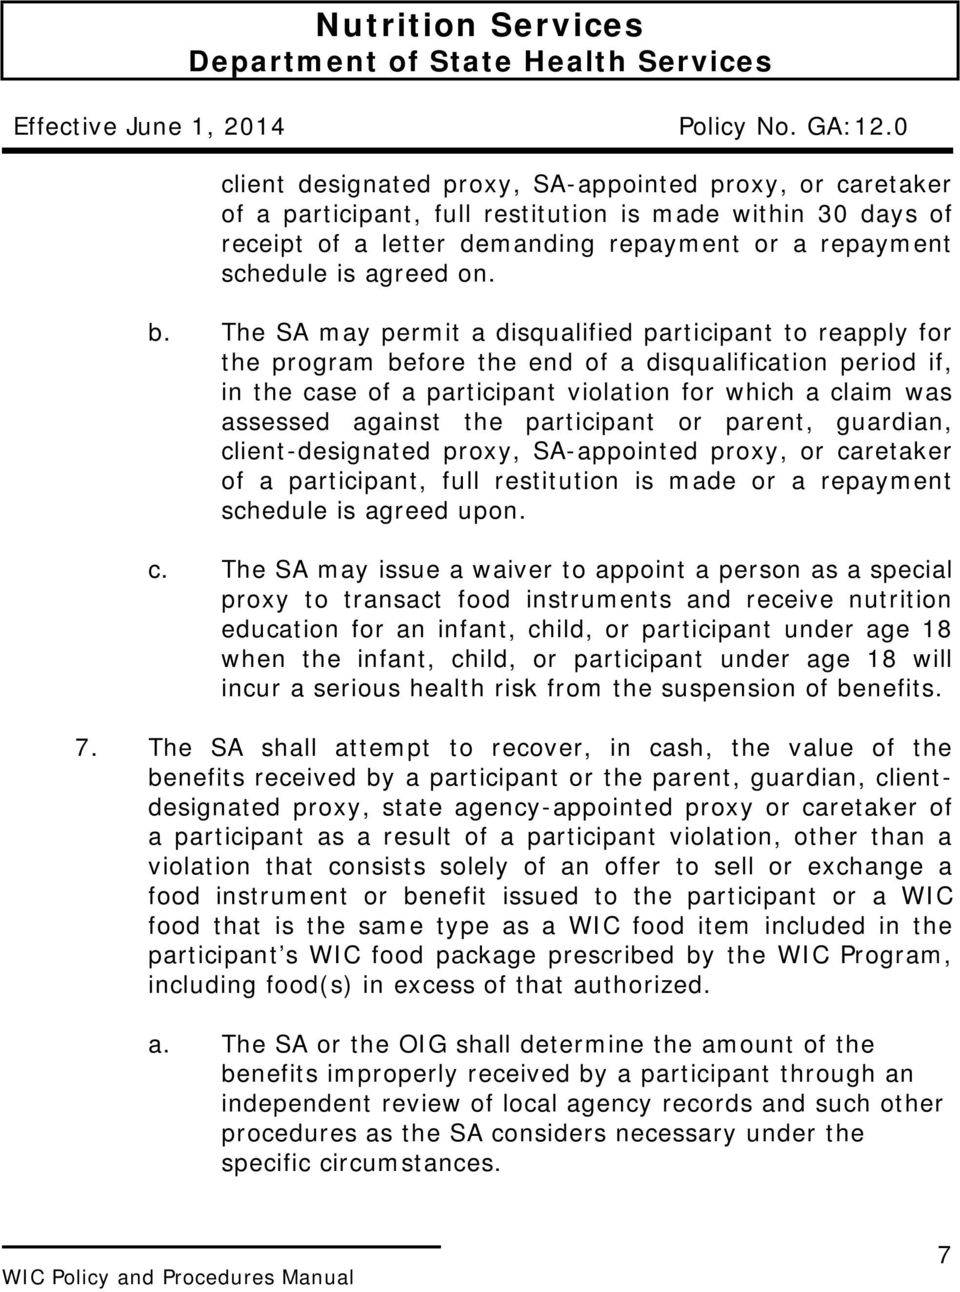 b. The SA may permit a disqualified participant to reapply for the program before the end of a disqualification period if, in the case of a participant violation for which a claim was assessed